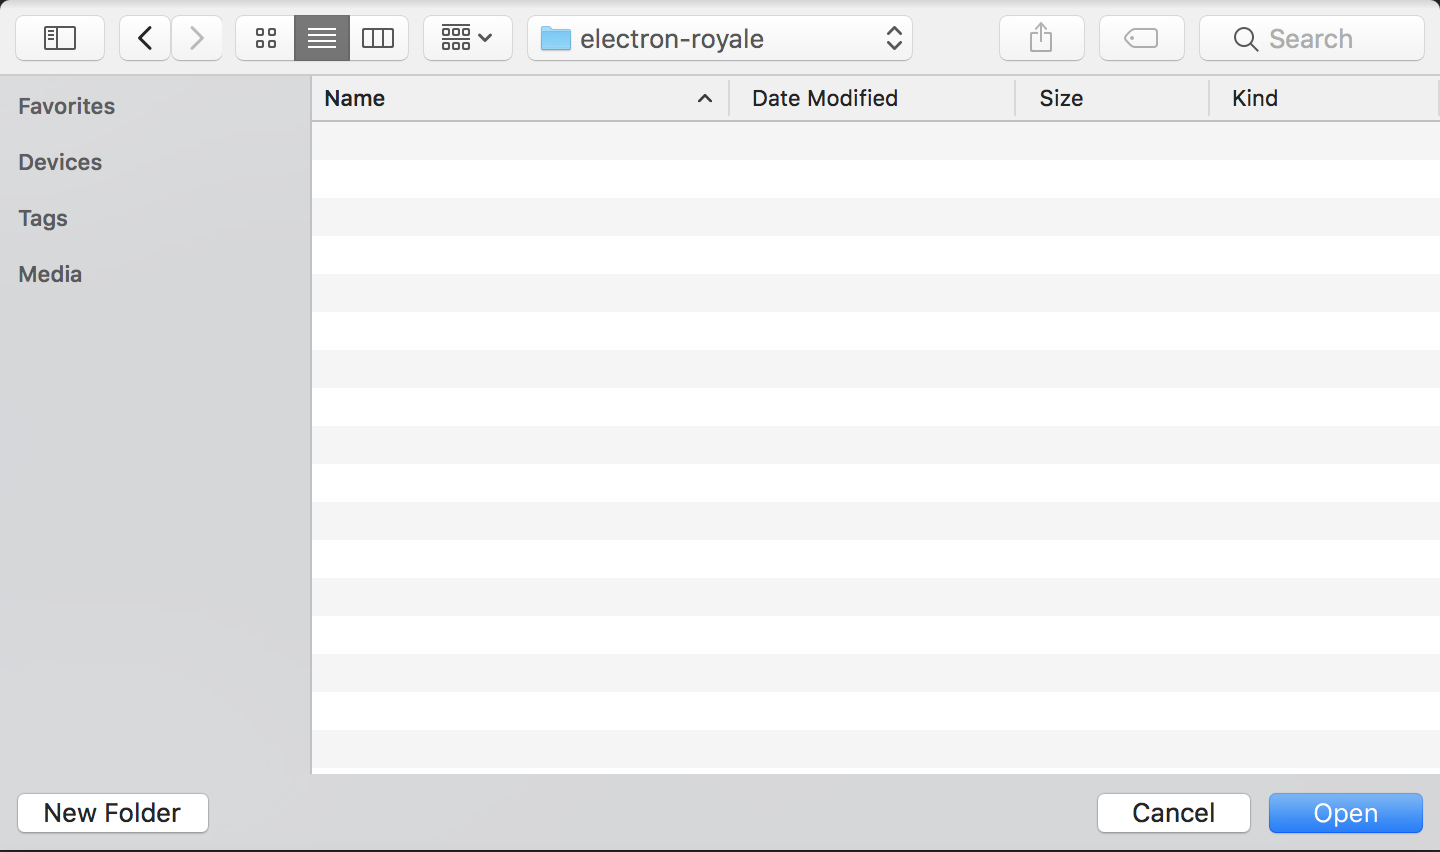 How to create a Desktop Application with Royale and Electron